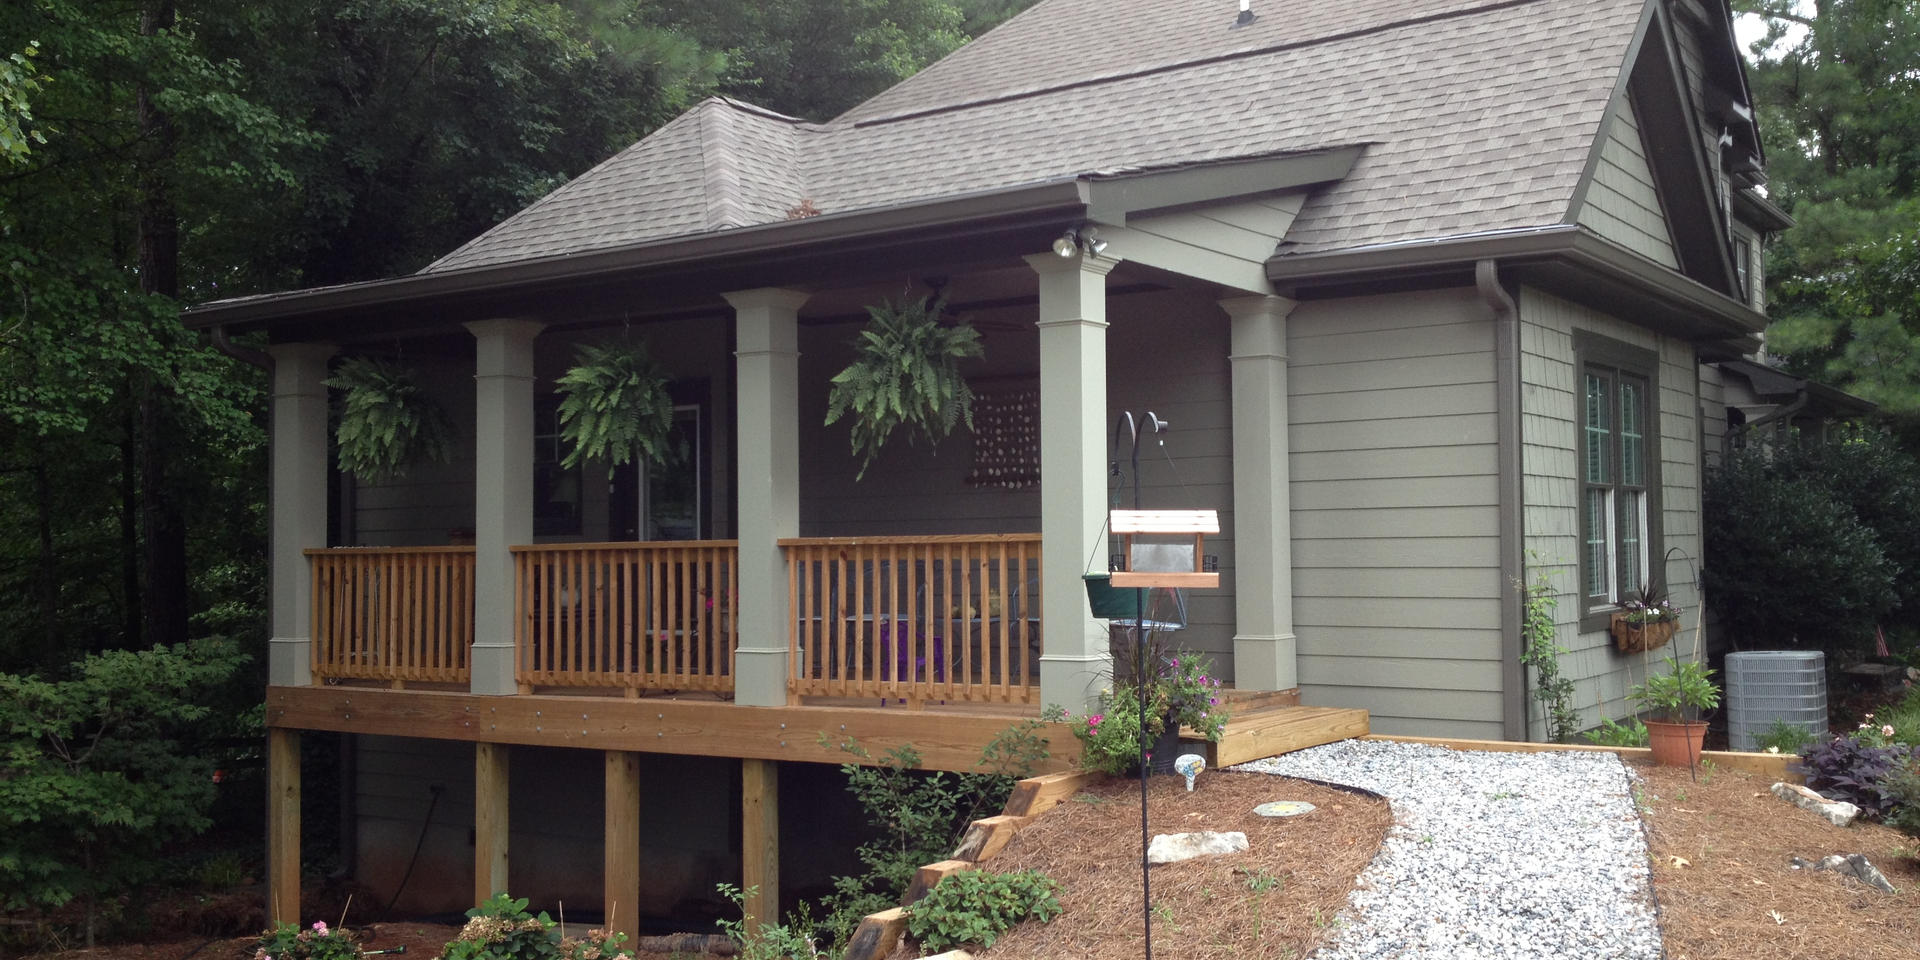 Side view of addition after landscaping.